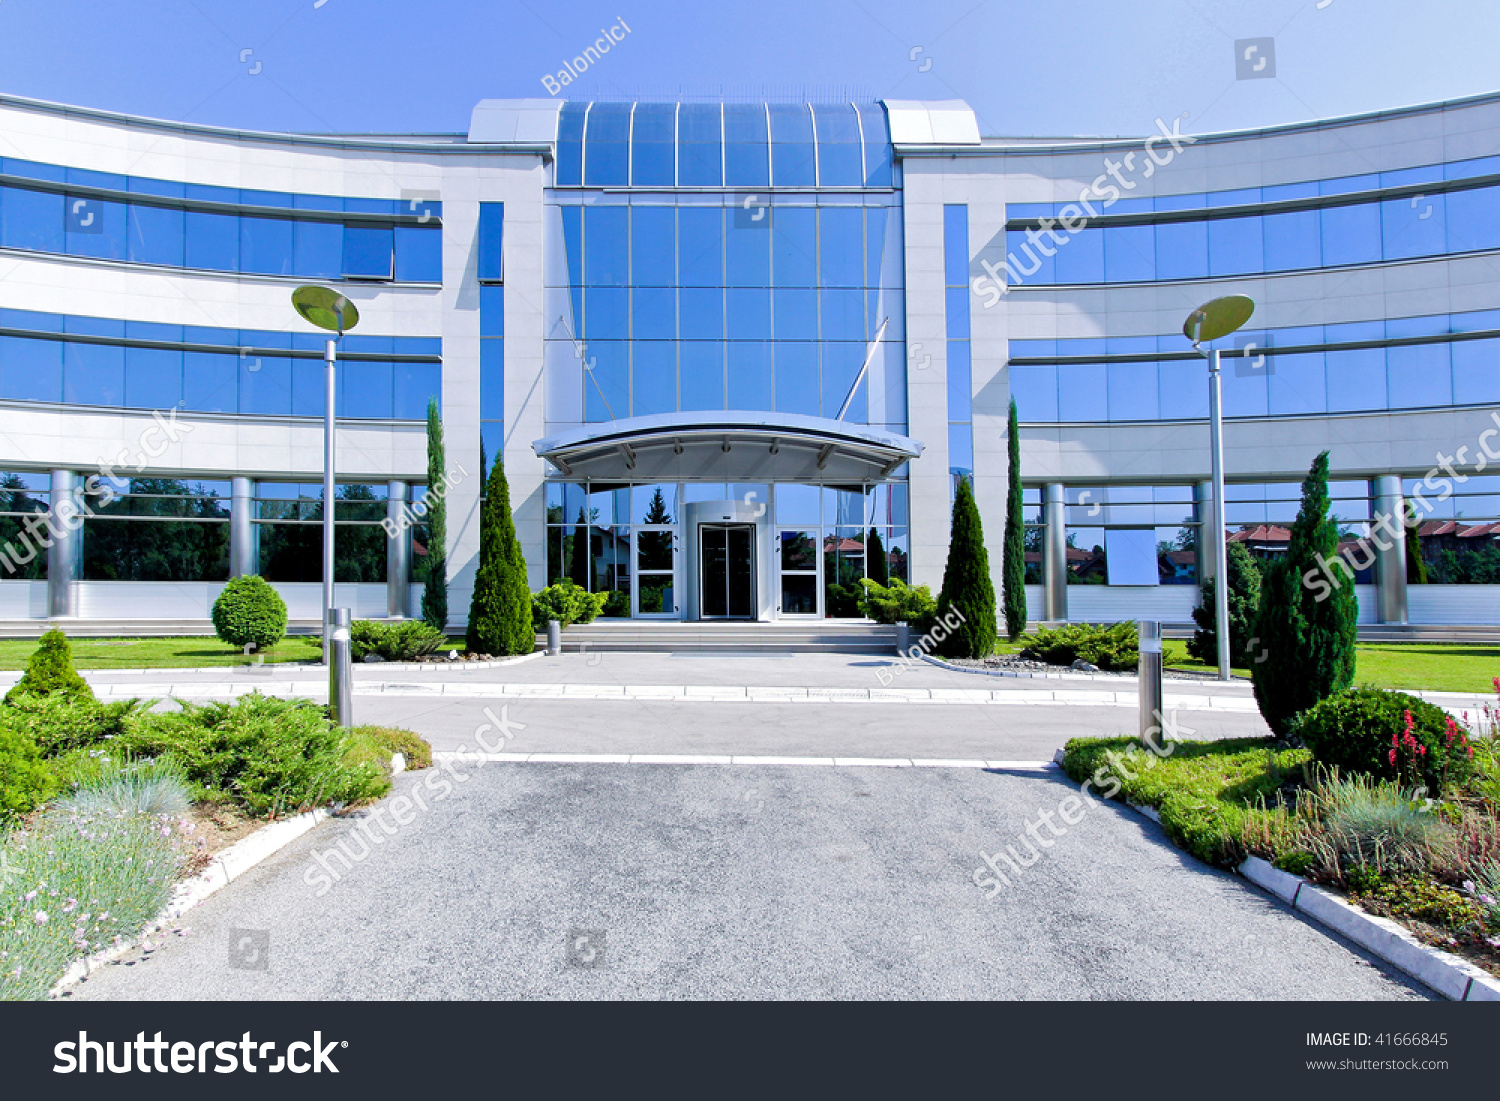 Front view of blue glass office building stock photo for Exterior view of building